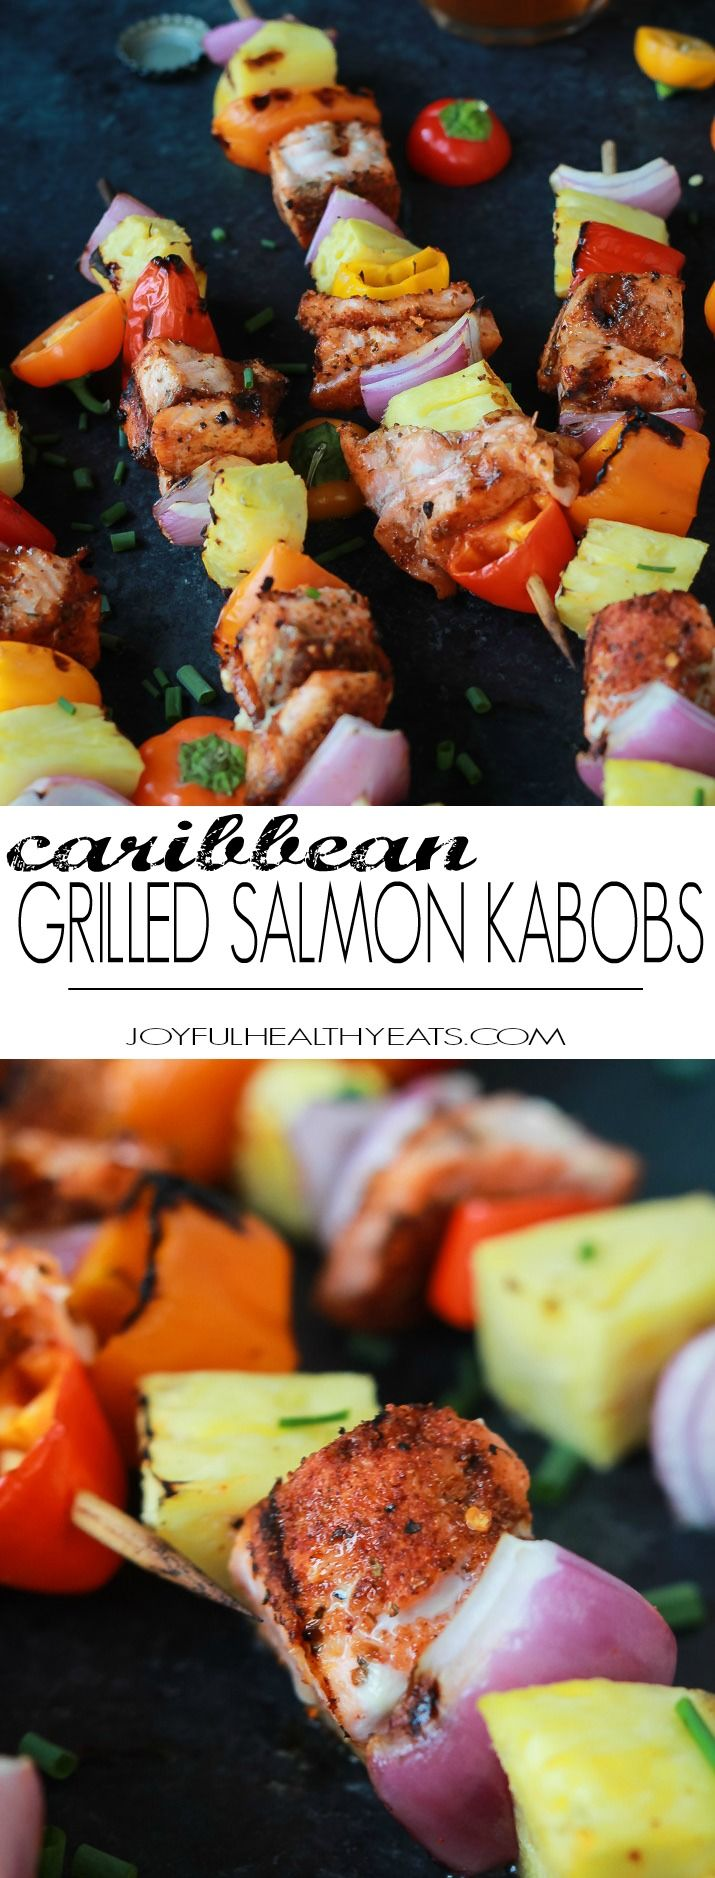 Caribbean Grilled Salmon Kabobs will take you straight to the islands with the cajun spices, fresh pineapple, bell peppers, and fresh seafood! Perfect healthy grilling recipe for the summer done in 20 minutes! | joyfulhealthyeats.com #recipes